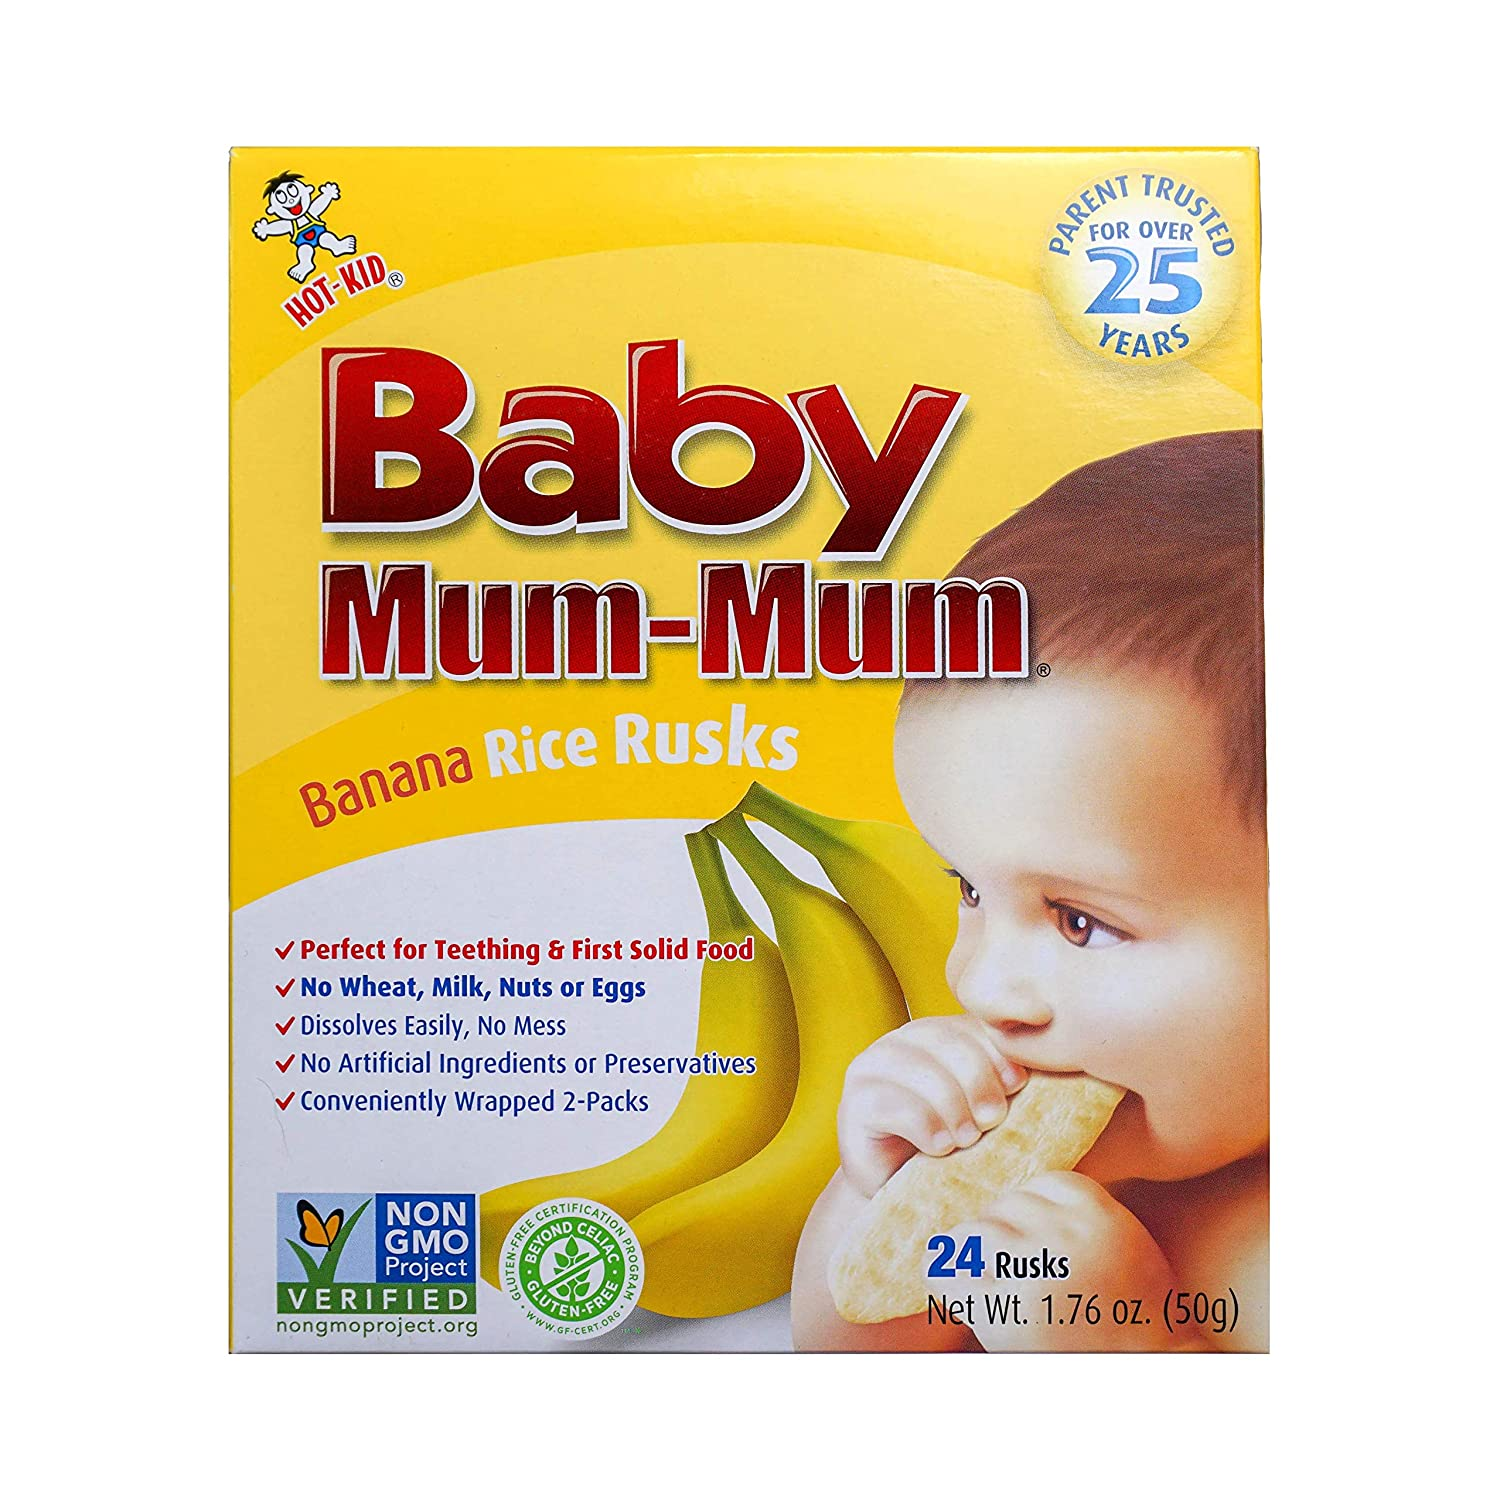 Hot-Kid Baby Mum-Mum Rice Rusks, Banana, Gluten Free, Allergen Free, Non-GMO, Rice Teether Cookie for Teething Infants, 1.76 Ounce, Pack of 6